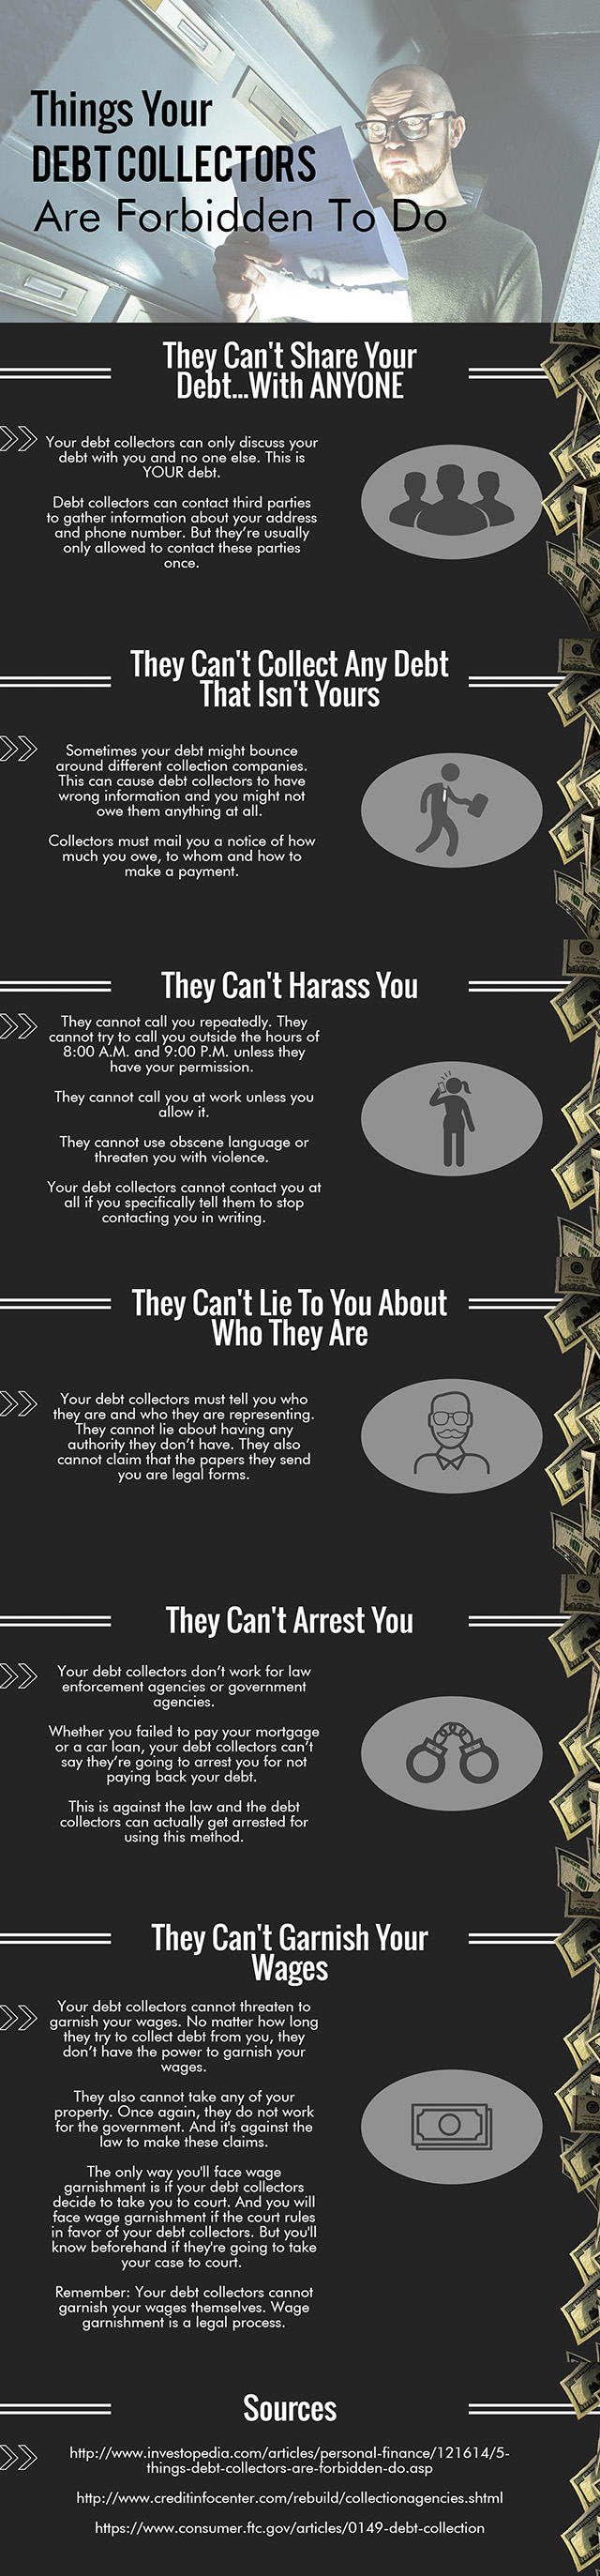 Things Your Debt Collectors Are Forbidden To Do - Infographic 3